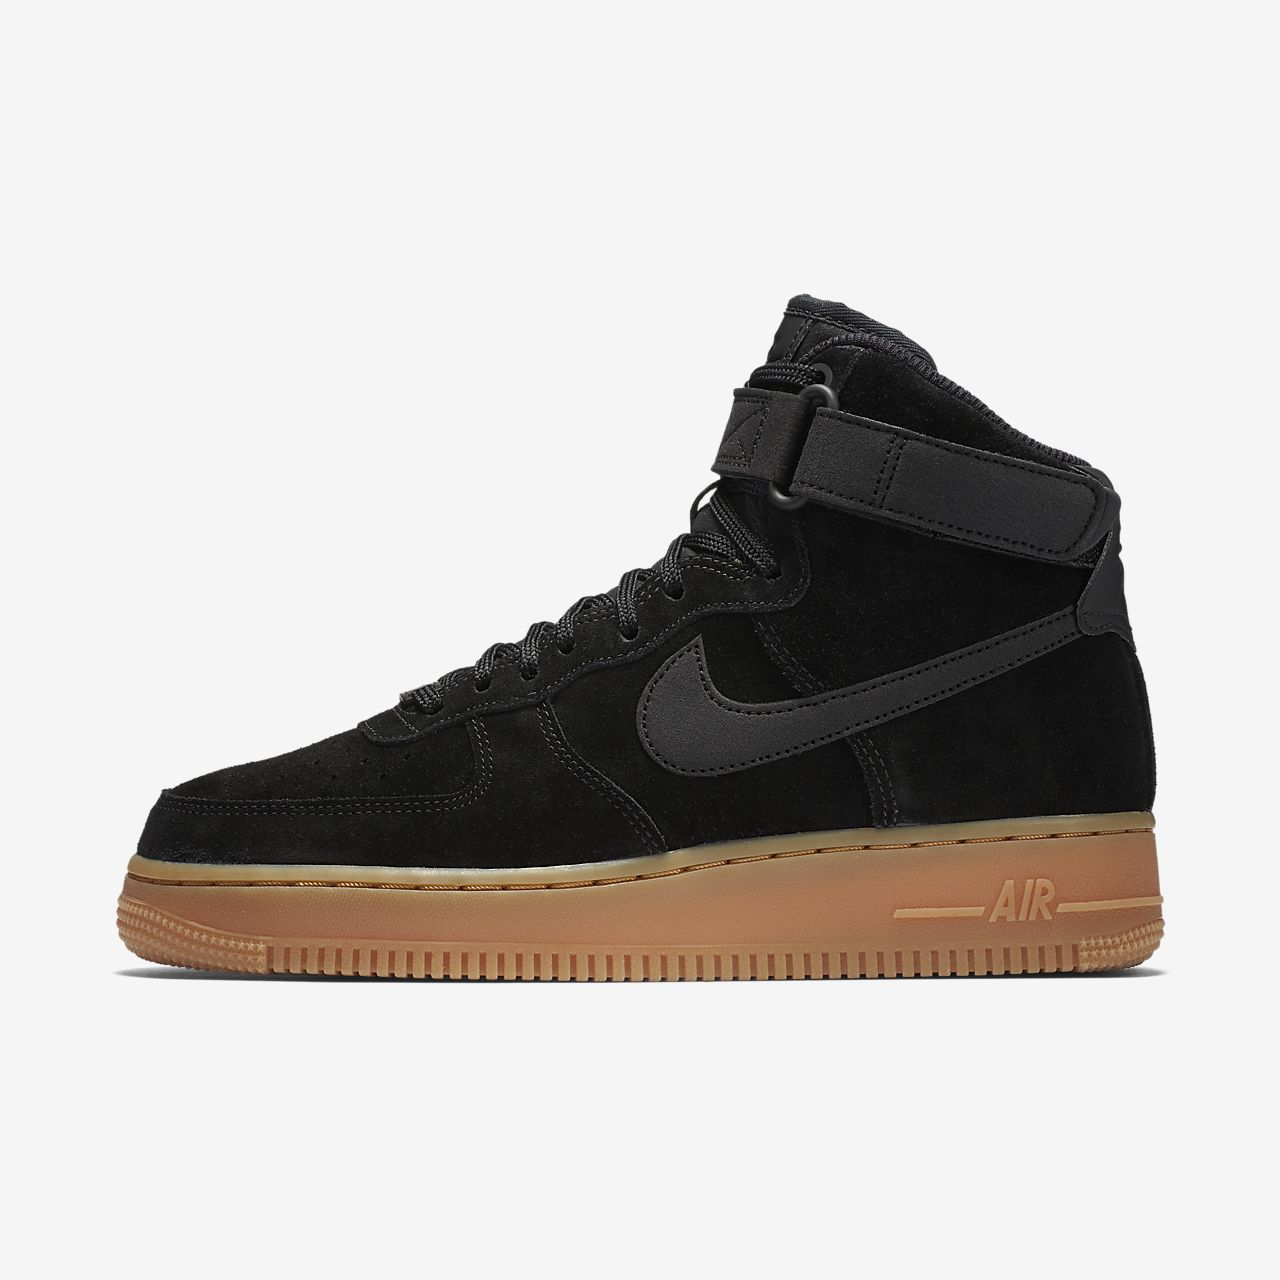 air force 1 black gum nz